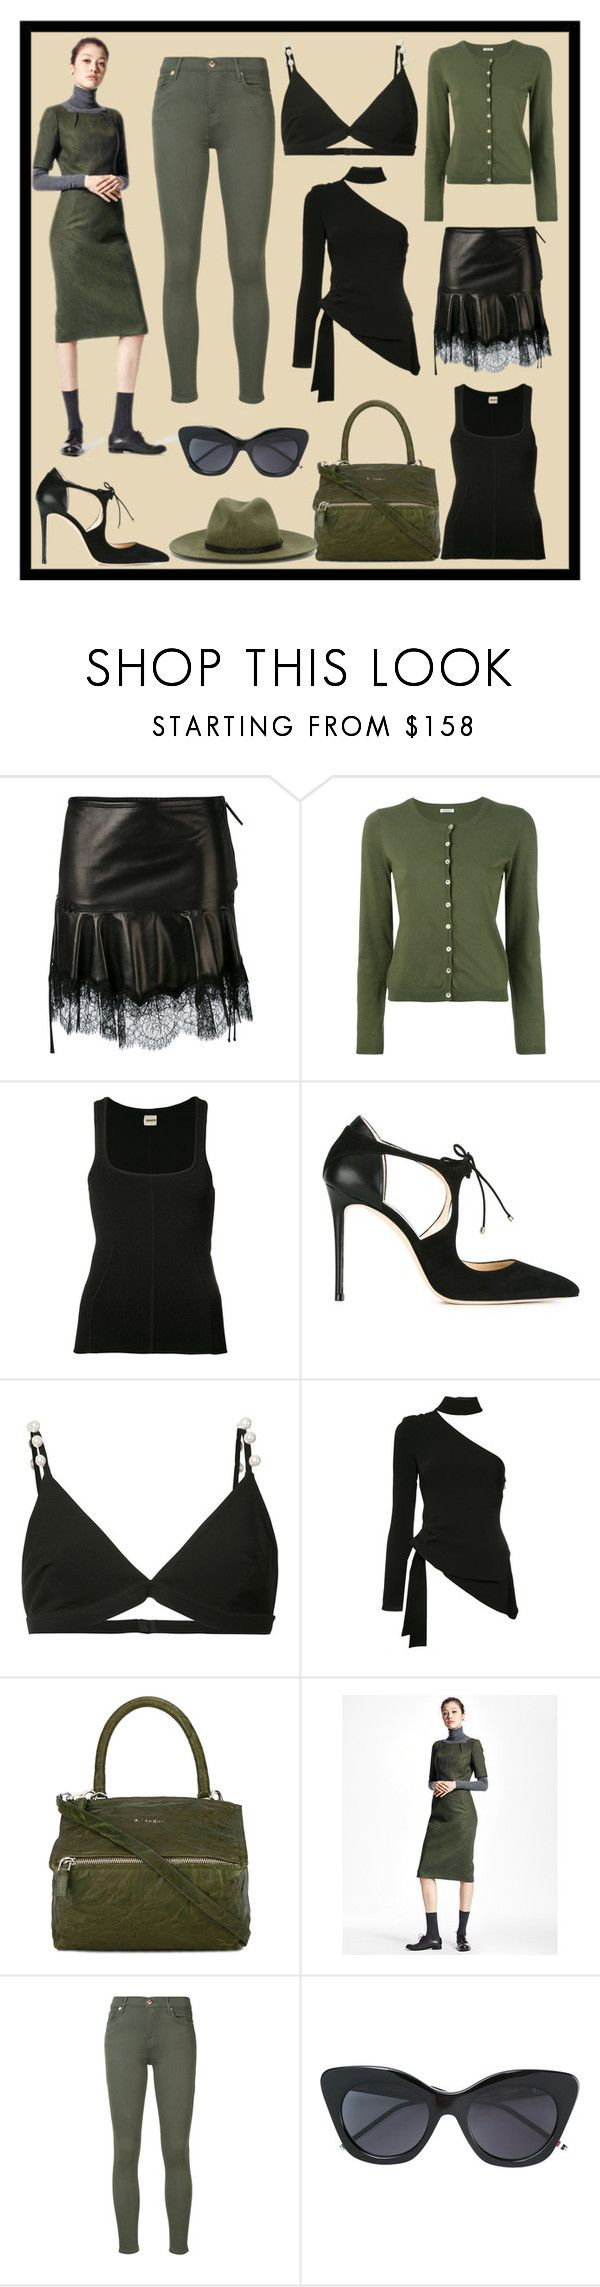 """Promotional Sale"" by cate-jennifer ❤ liked on Polyvore featuring Roberto Cavalli, P.A.R.O.S.H., Khaite, Jimmy Choo, Givenchy, Cinq à Sept, Brooks Brothers, 7 For All Mankind, Thom Browne and rag & bone"